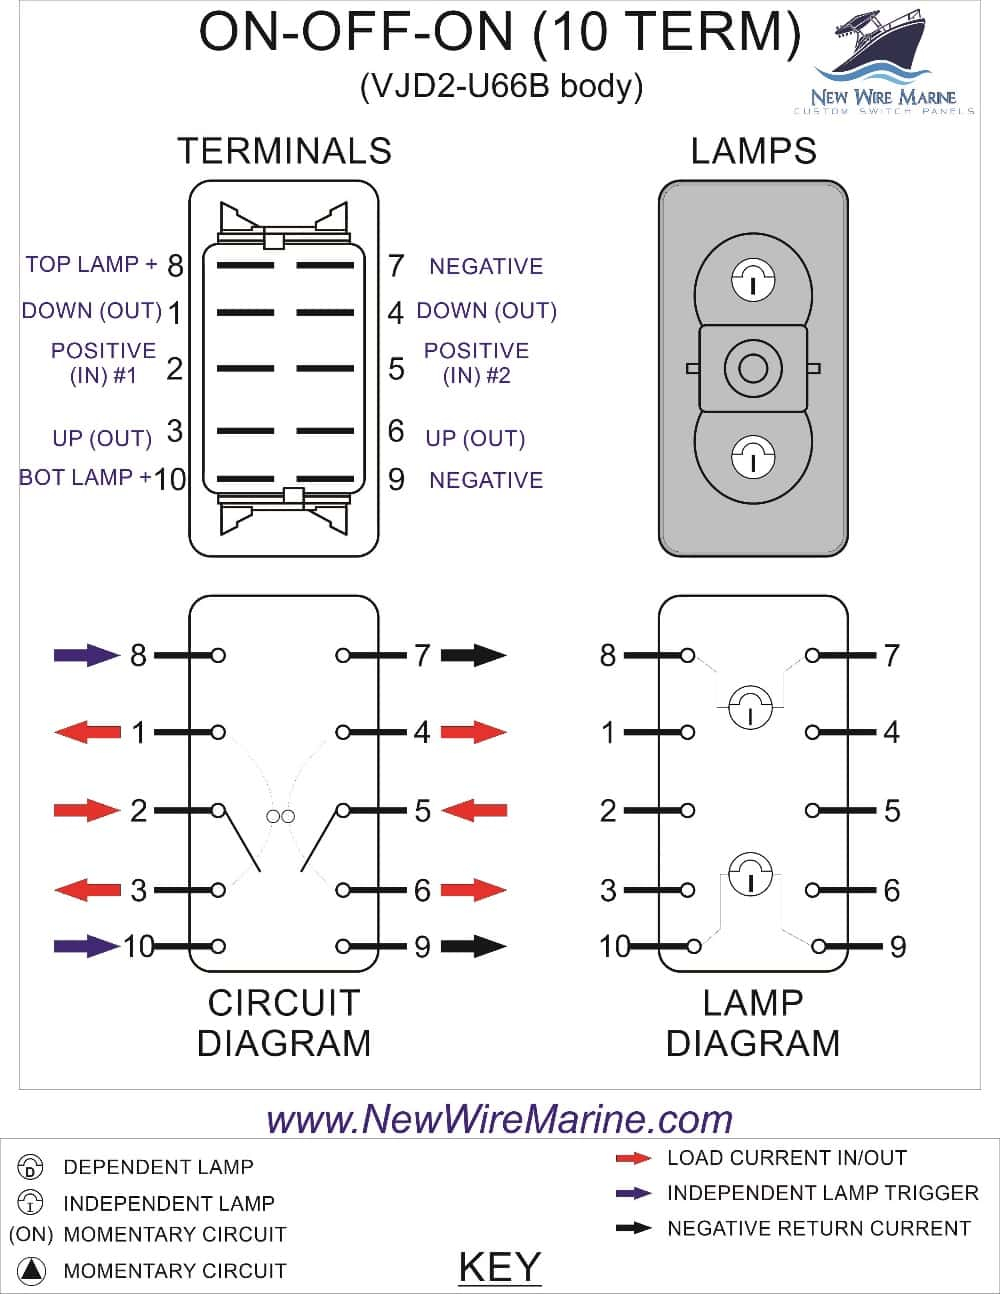 Spdt Switch Wiring Spdt Switch Wiring Diagram - Wire Data Schema •